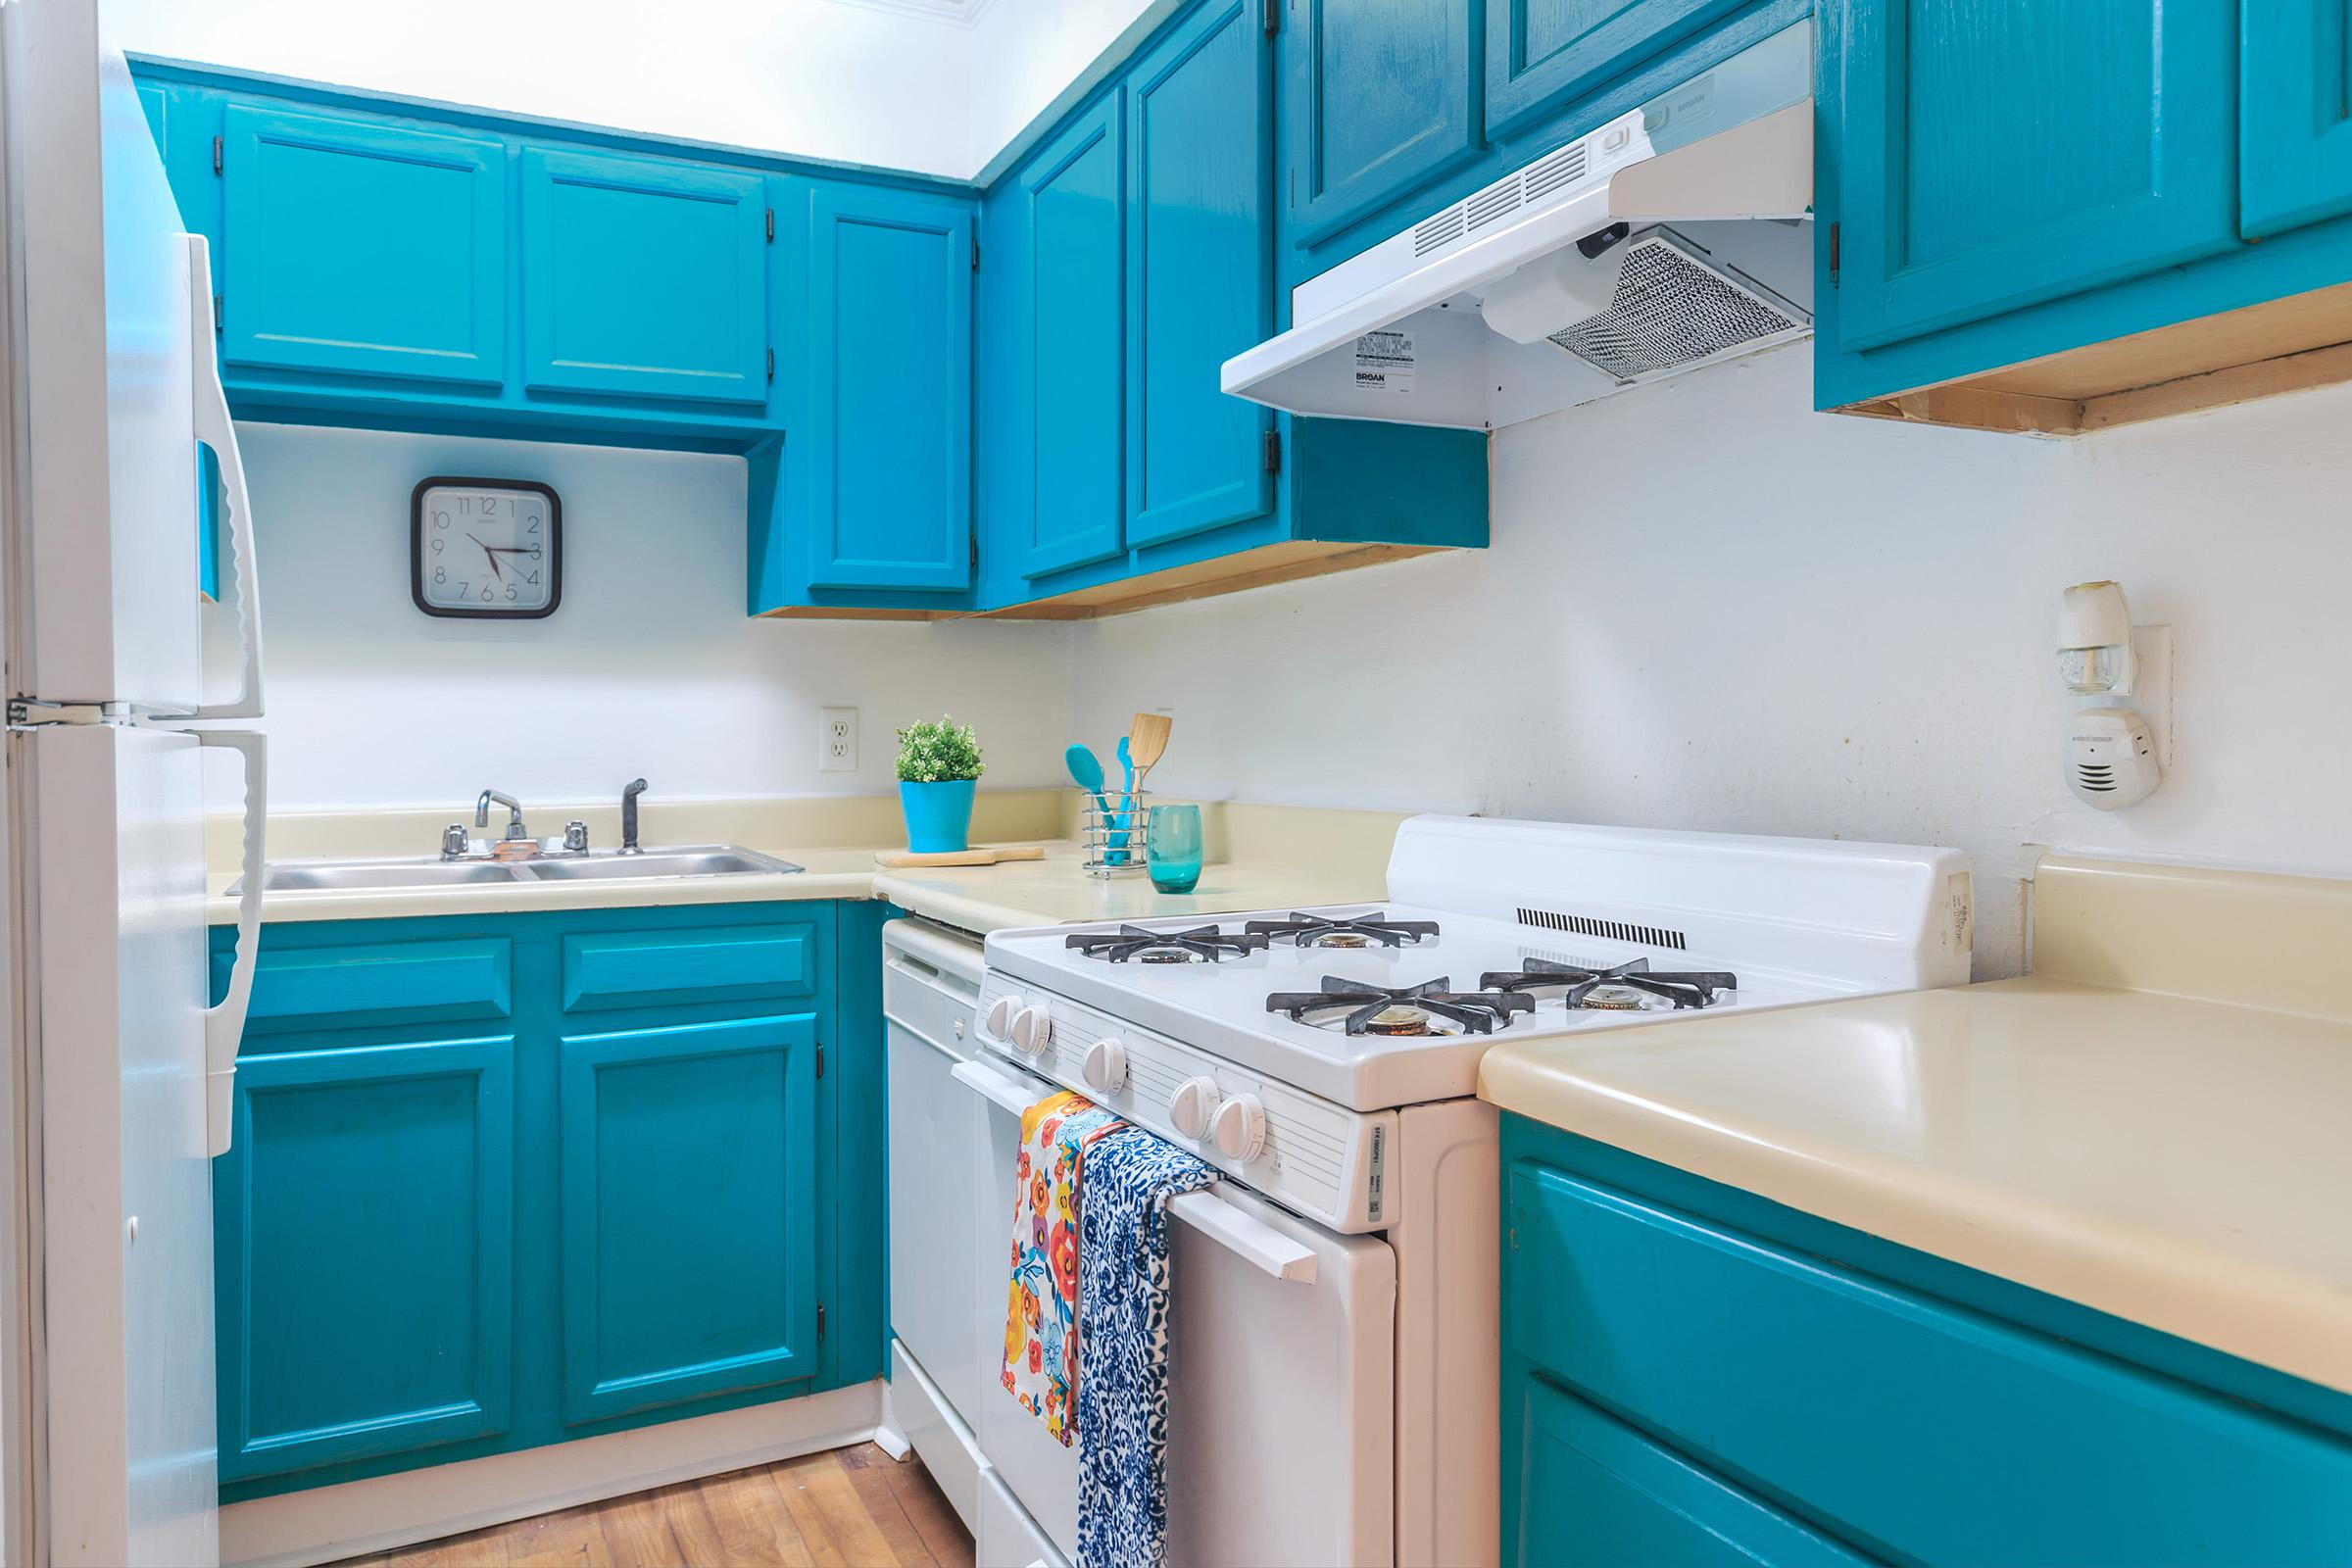 a kitchen with a blue sink